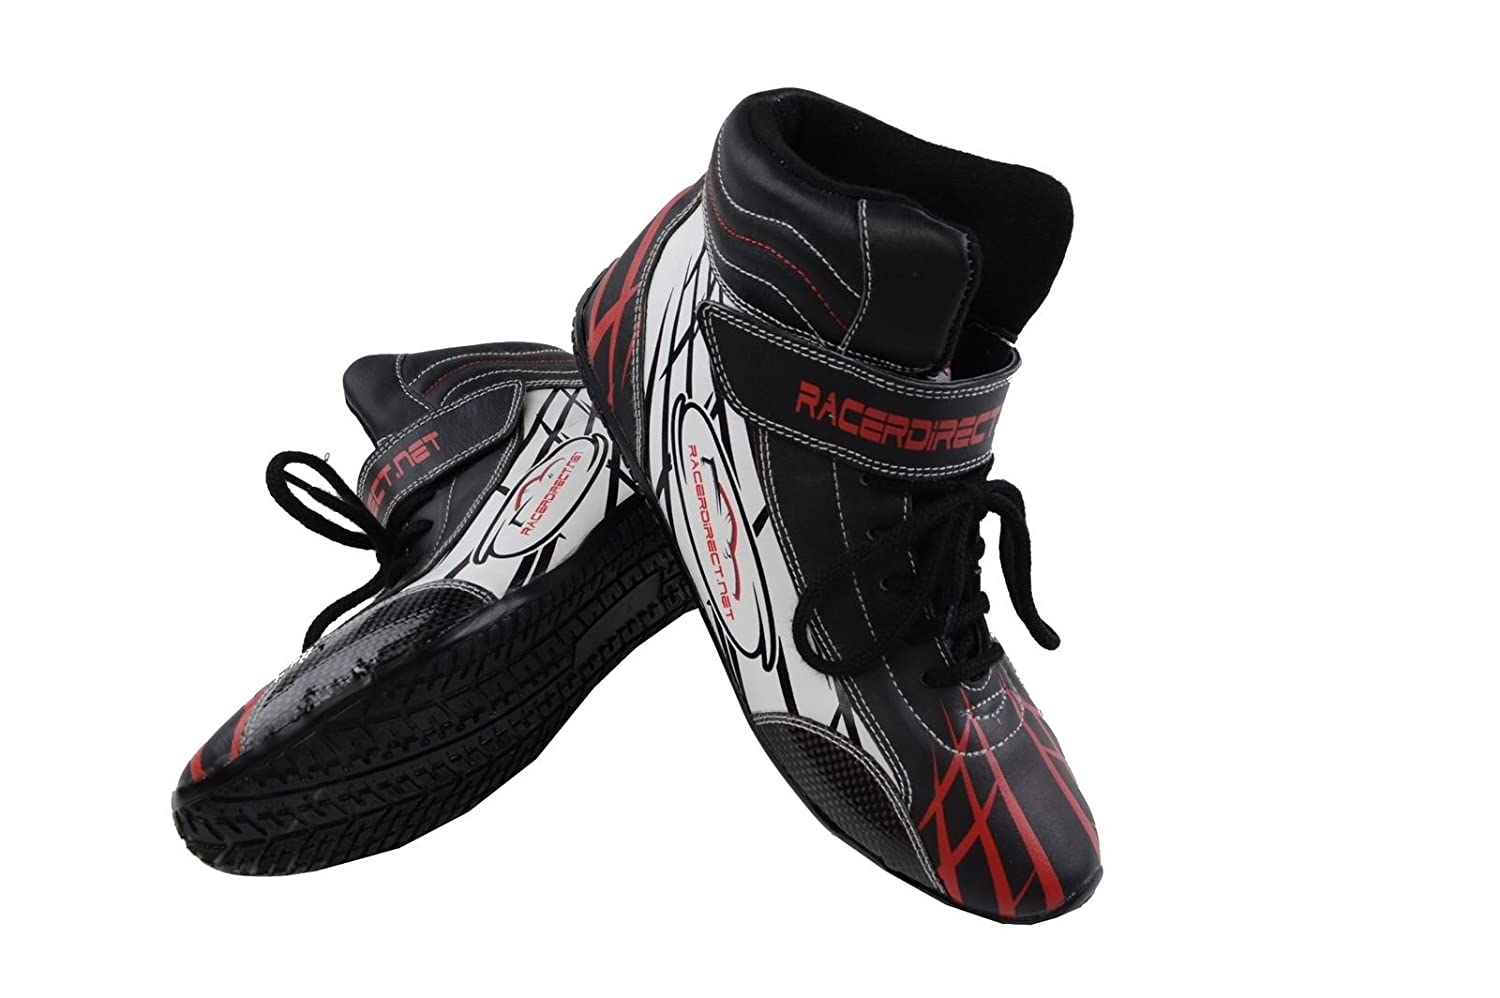 Racerdirect.net Youth//Kids Mid Top Driving SFI 3.3//5 Race Shoes Size 4